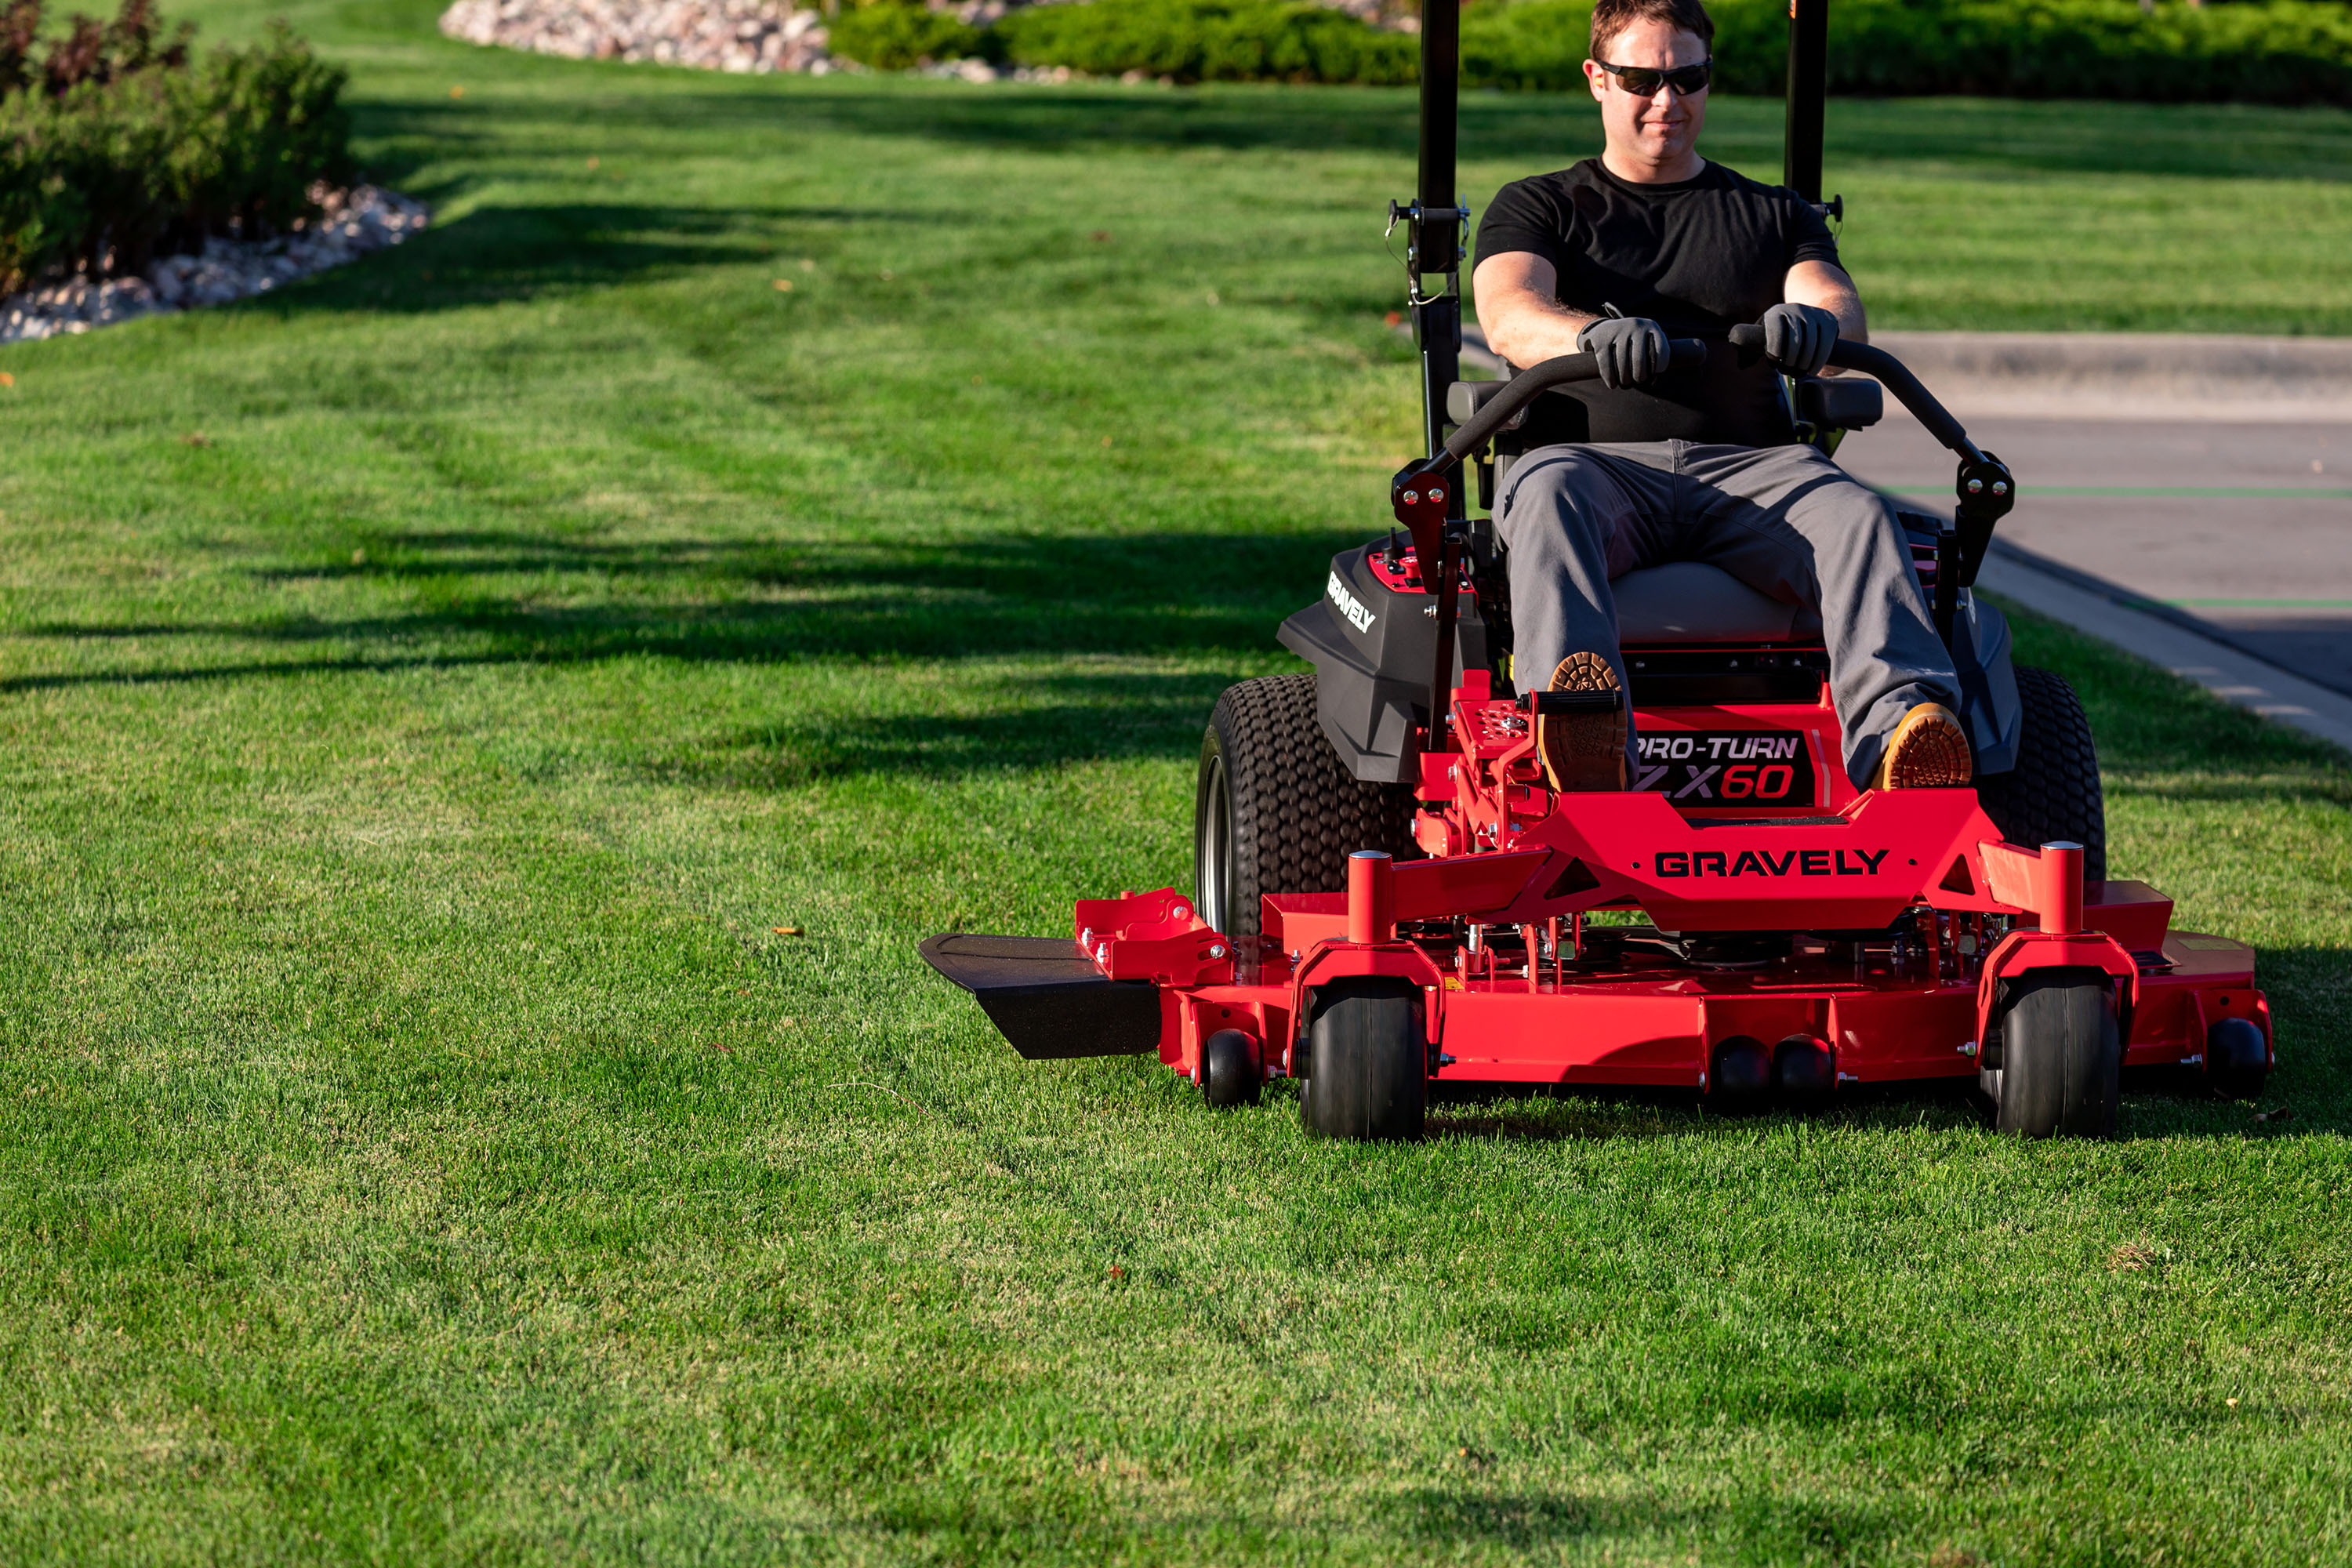 Mower roundup: Gravely adds new mower series, redesigns